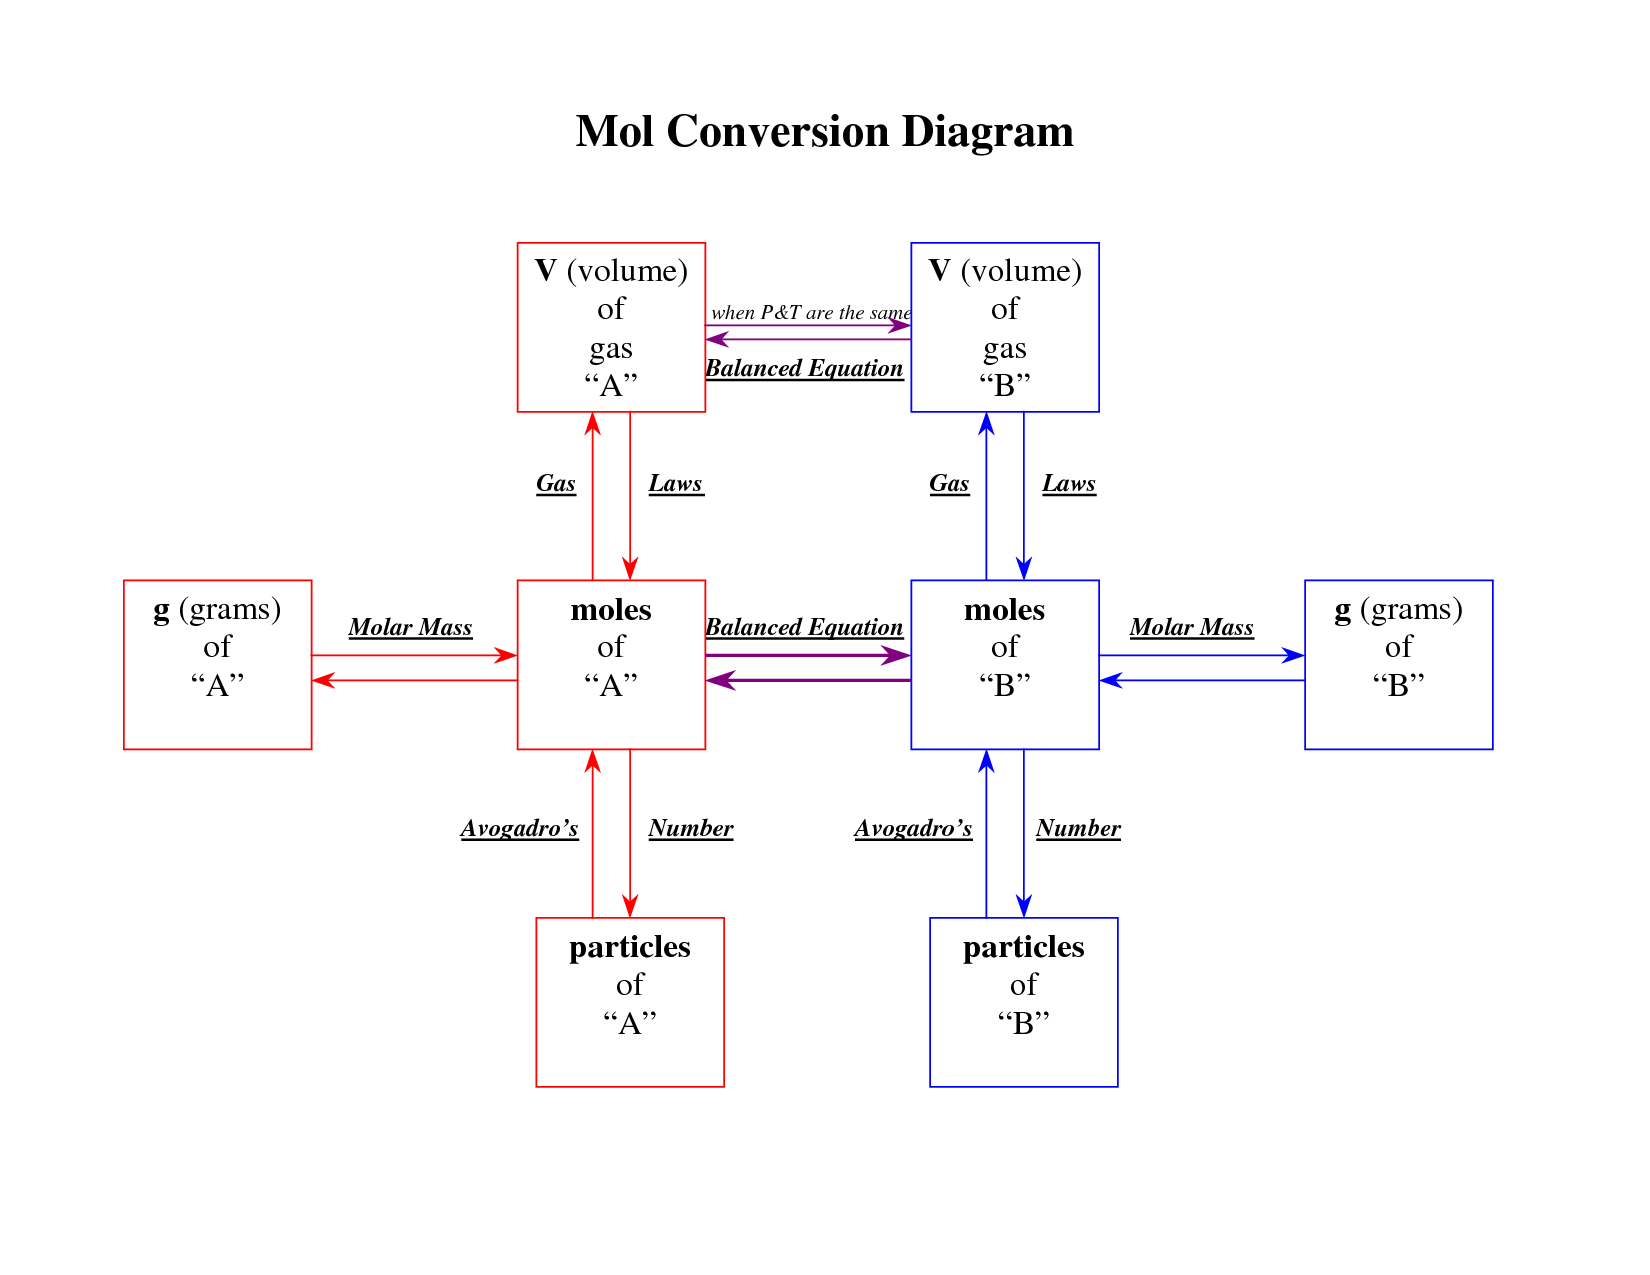 Cheat sheet for converting between moles and grams and atoms cheat sheet for converting between moles and grams and atoms google search nvjuhfo Choice Image